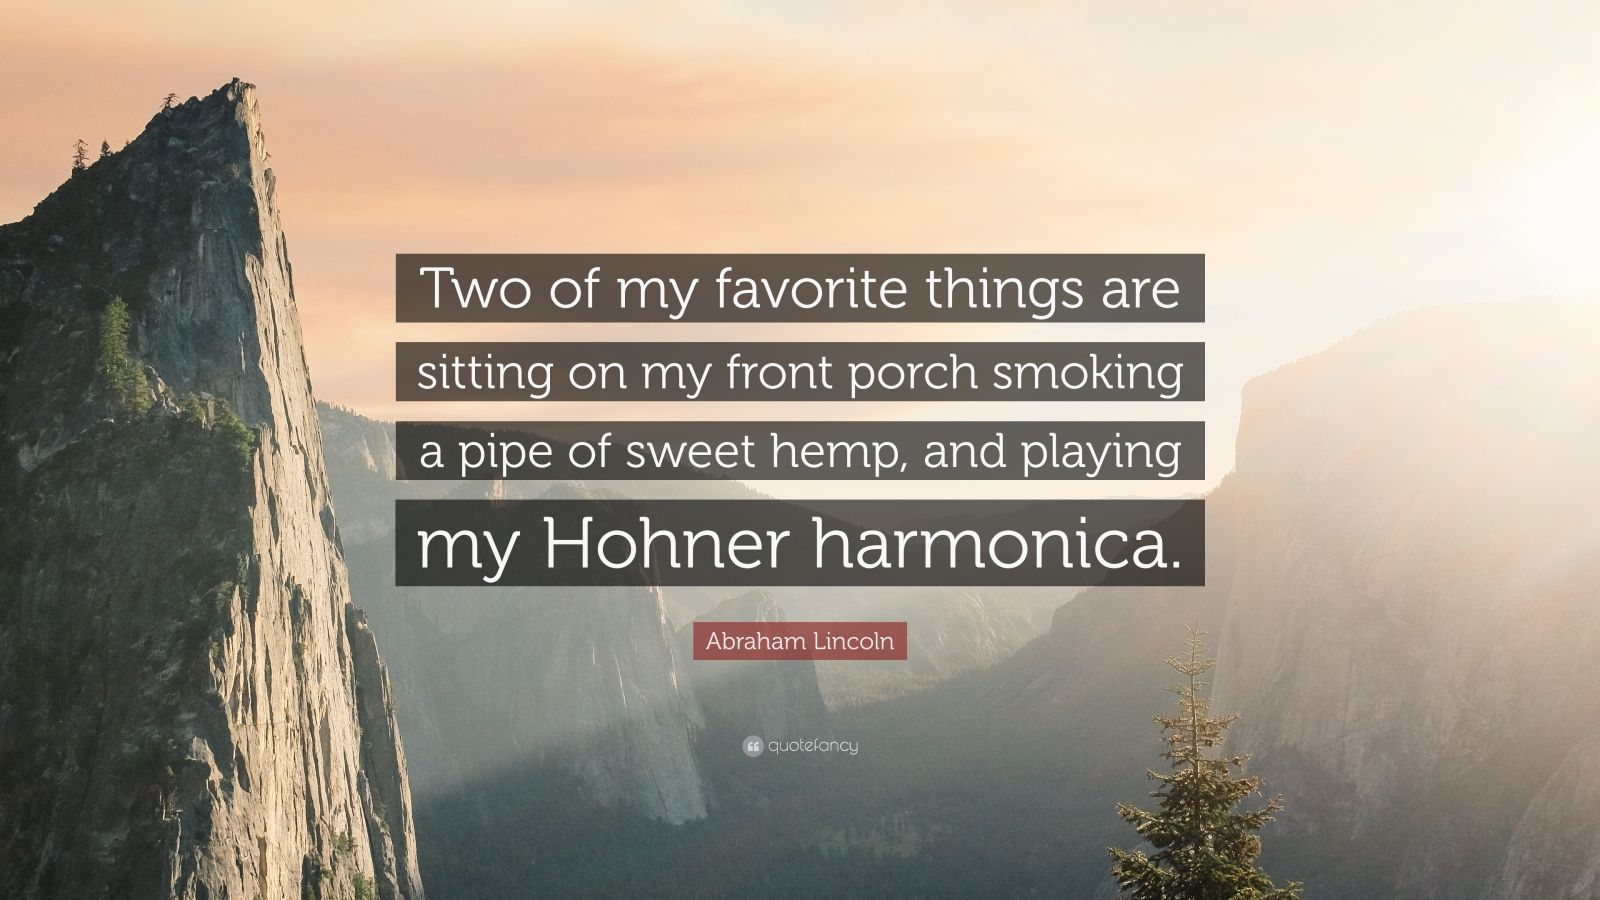 """Abraham Lincoln Quote: """"Two of my favorite things are sitting on my front porch smoking a pipe of sweet hemp, and playing my Hohner harmonica."""""""